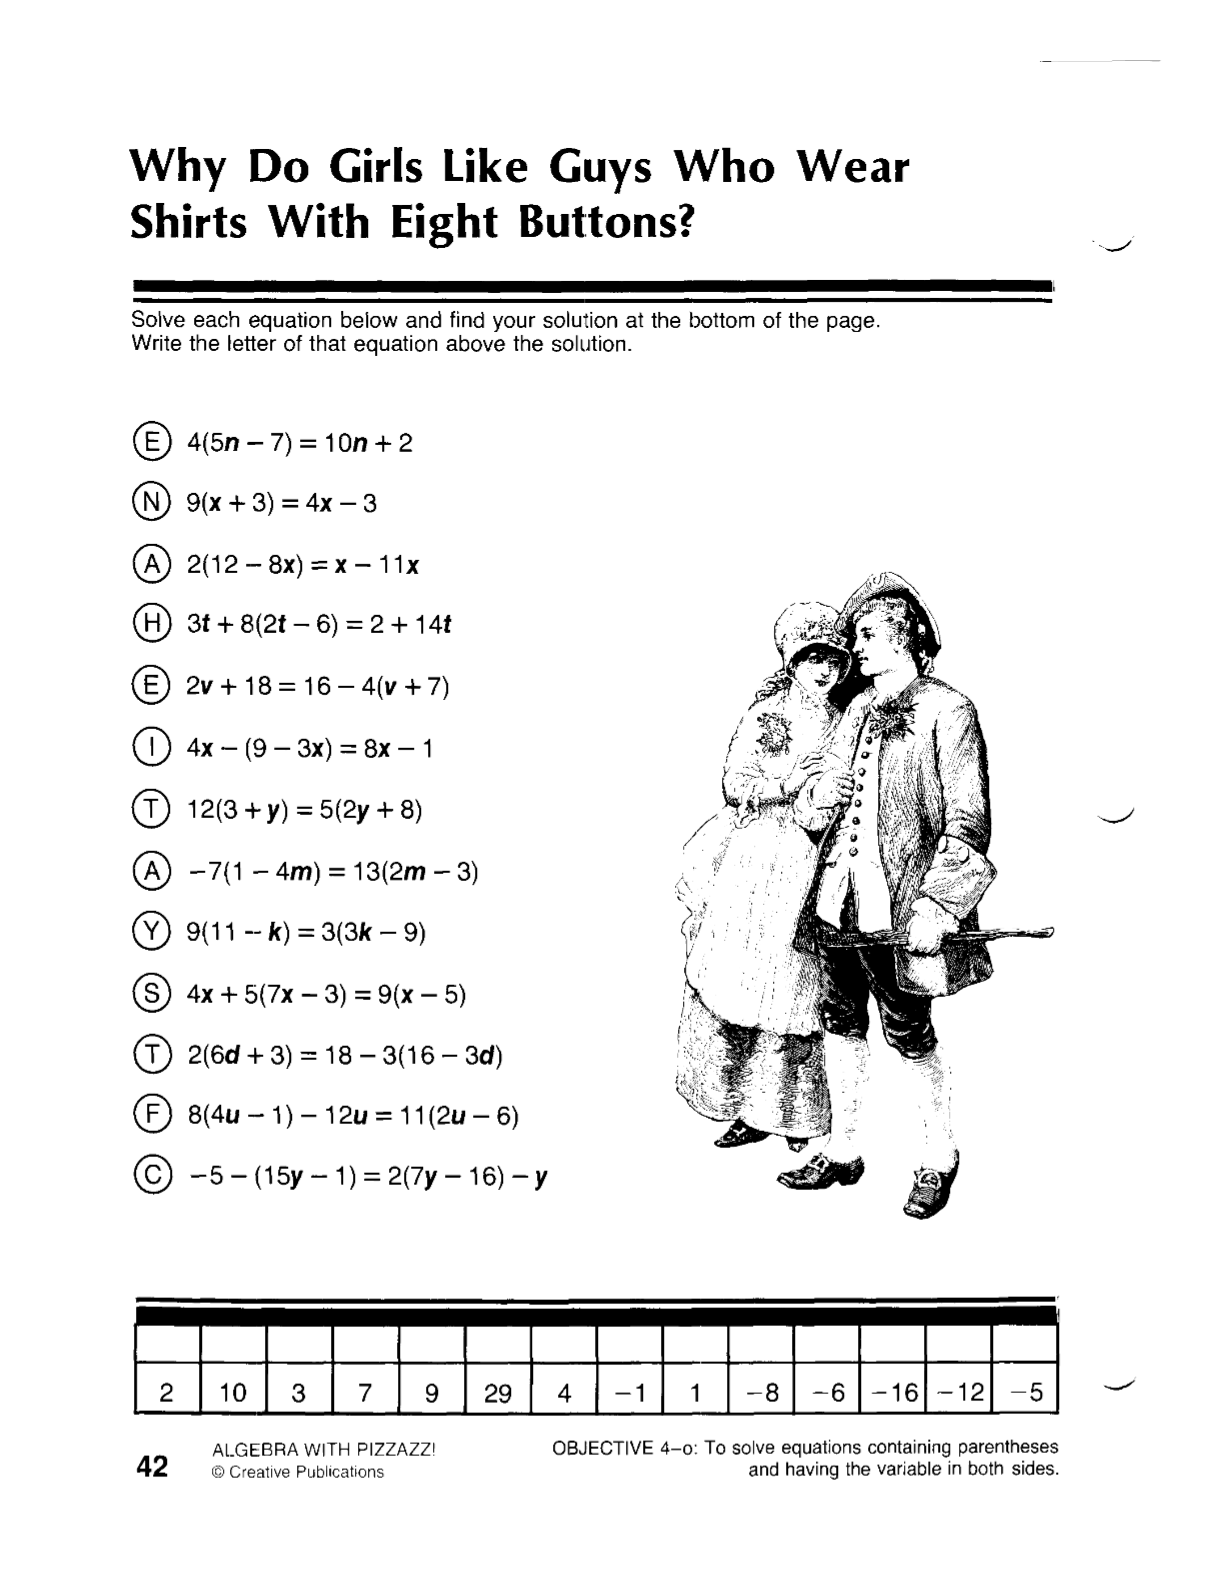 Printables Algebra 1 Review Worksheets algebra i mr g 817 activity 30 by design 818 33 1 hmh textbook p 9 26 819 multi step equations worksheet 1